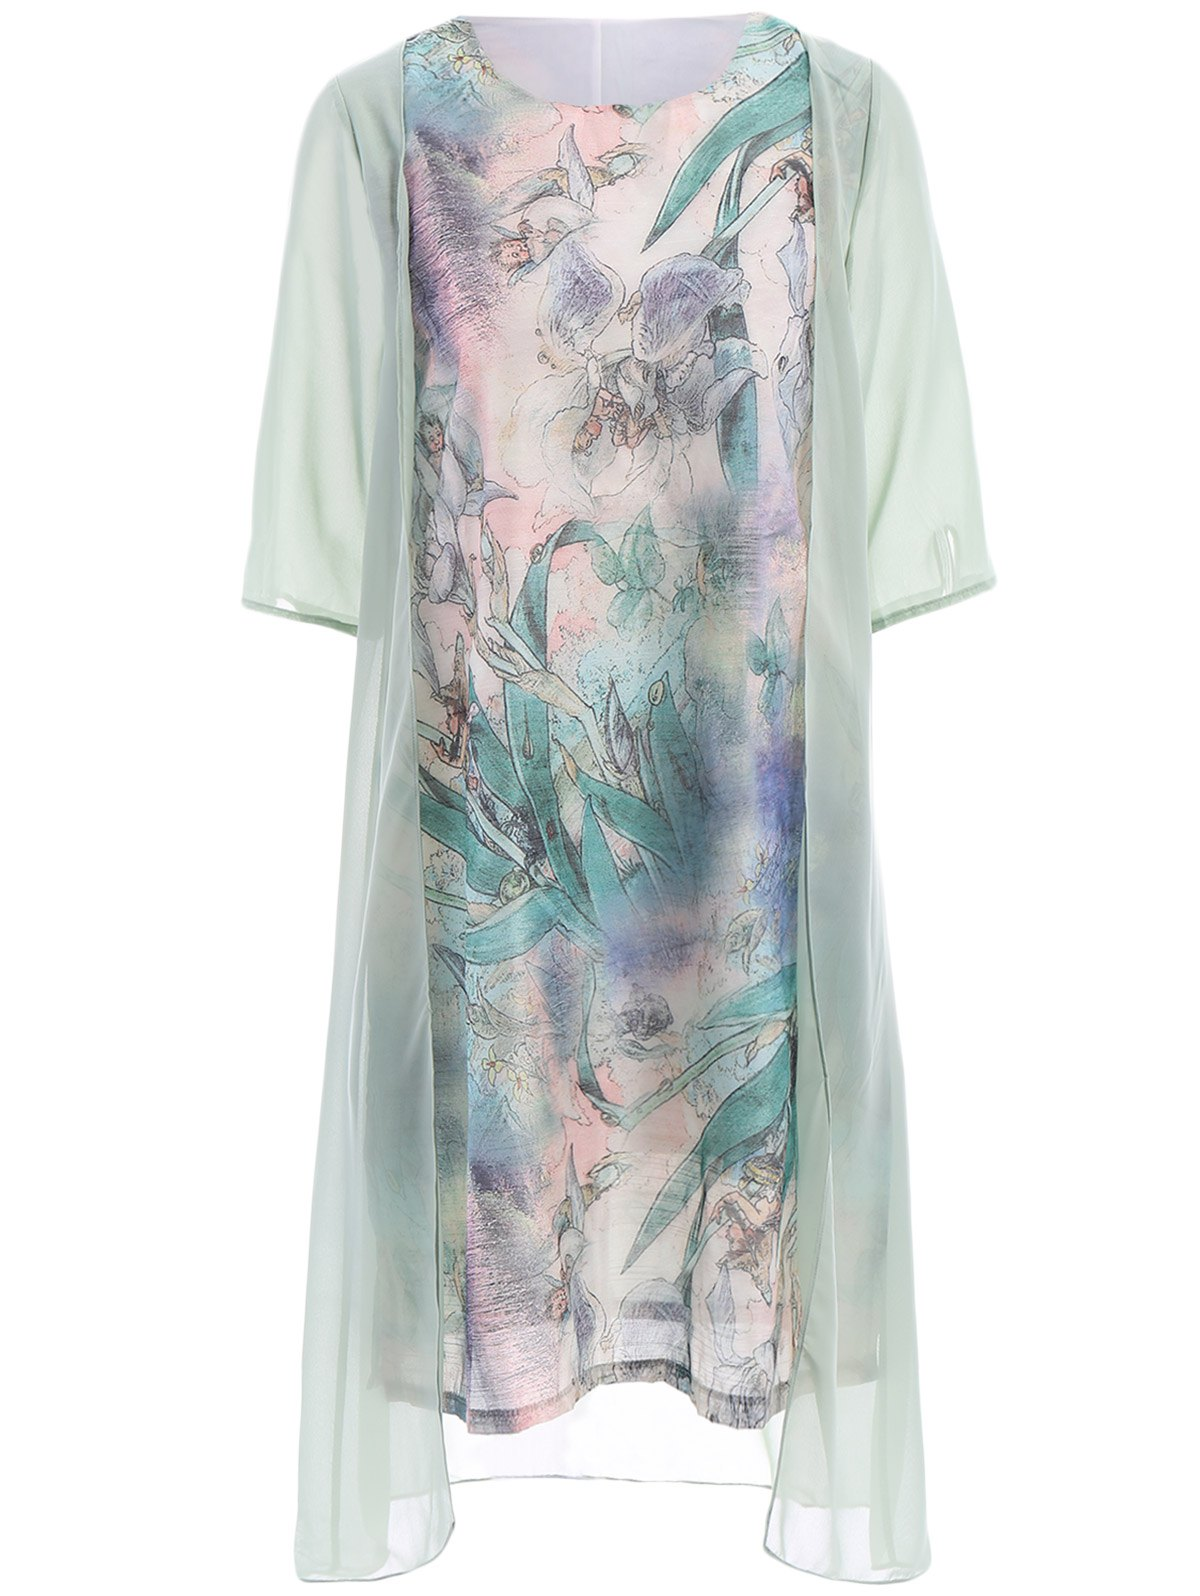 Ladylike Scoop Neck 3/4 Sleeve Floral Print Faux Twinset See-Through Women's Dress